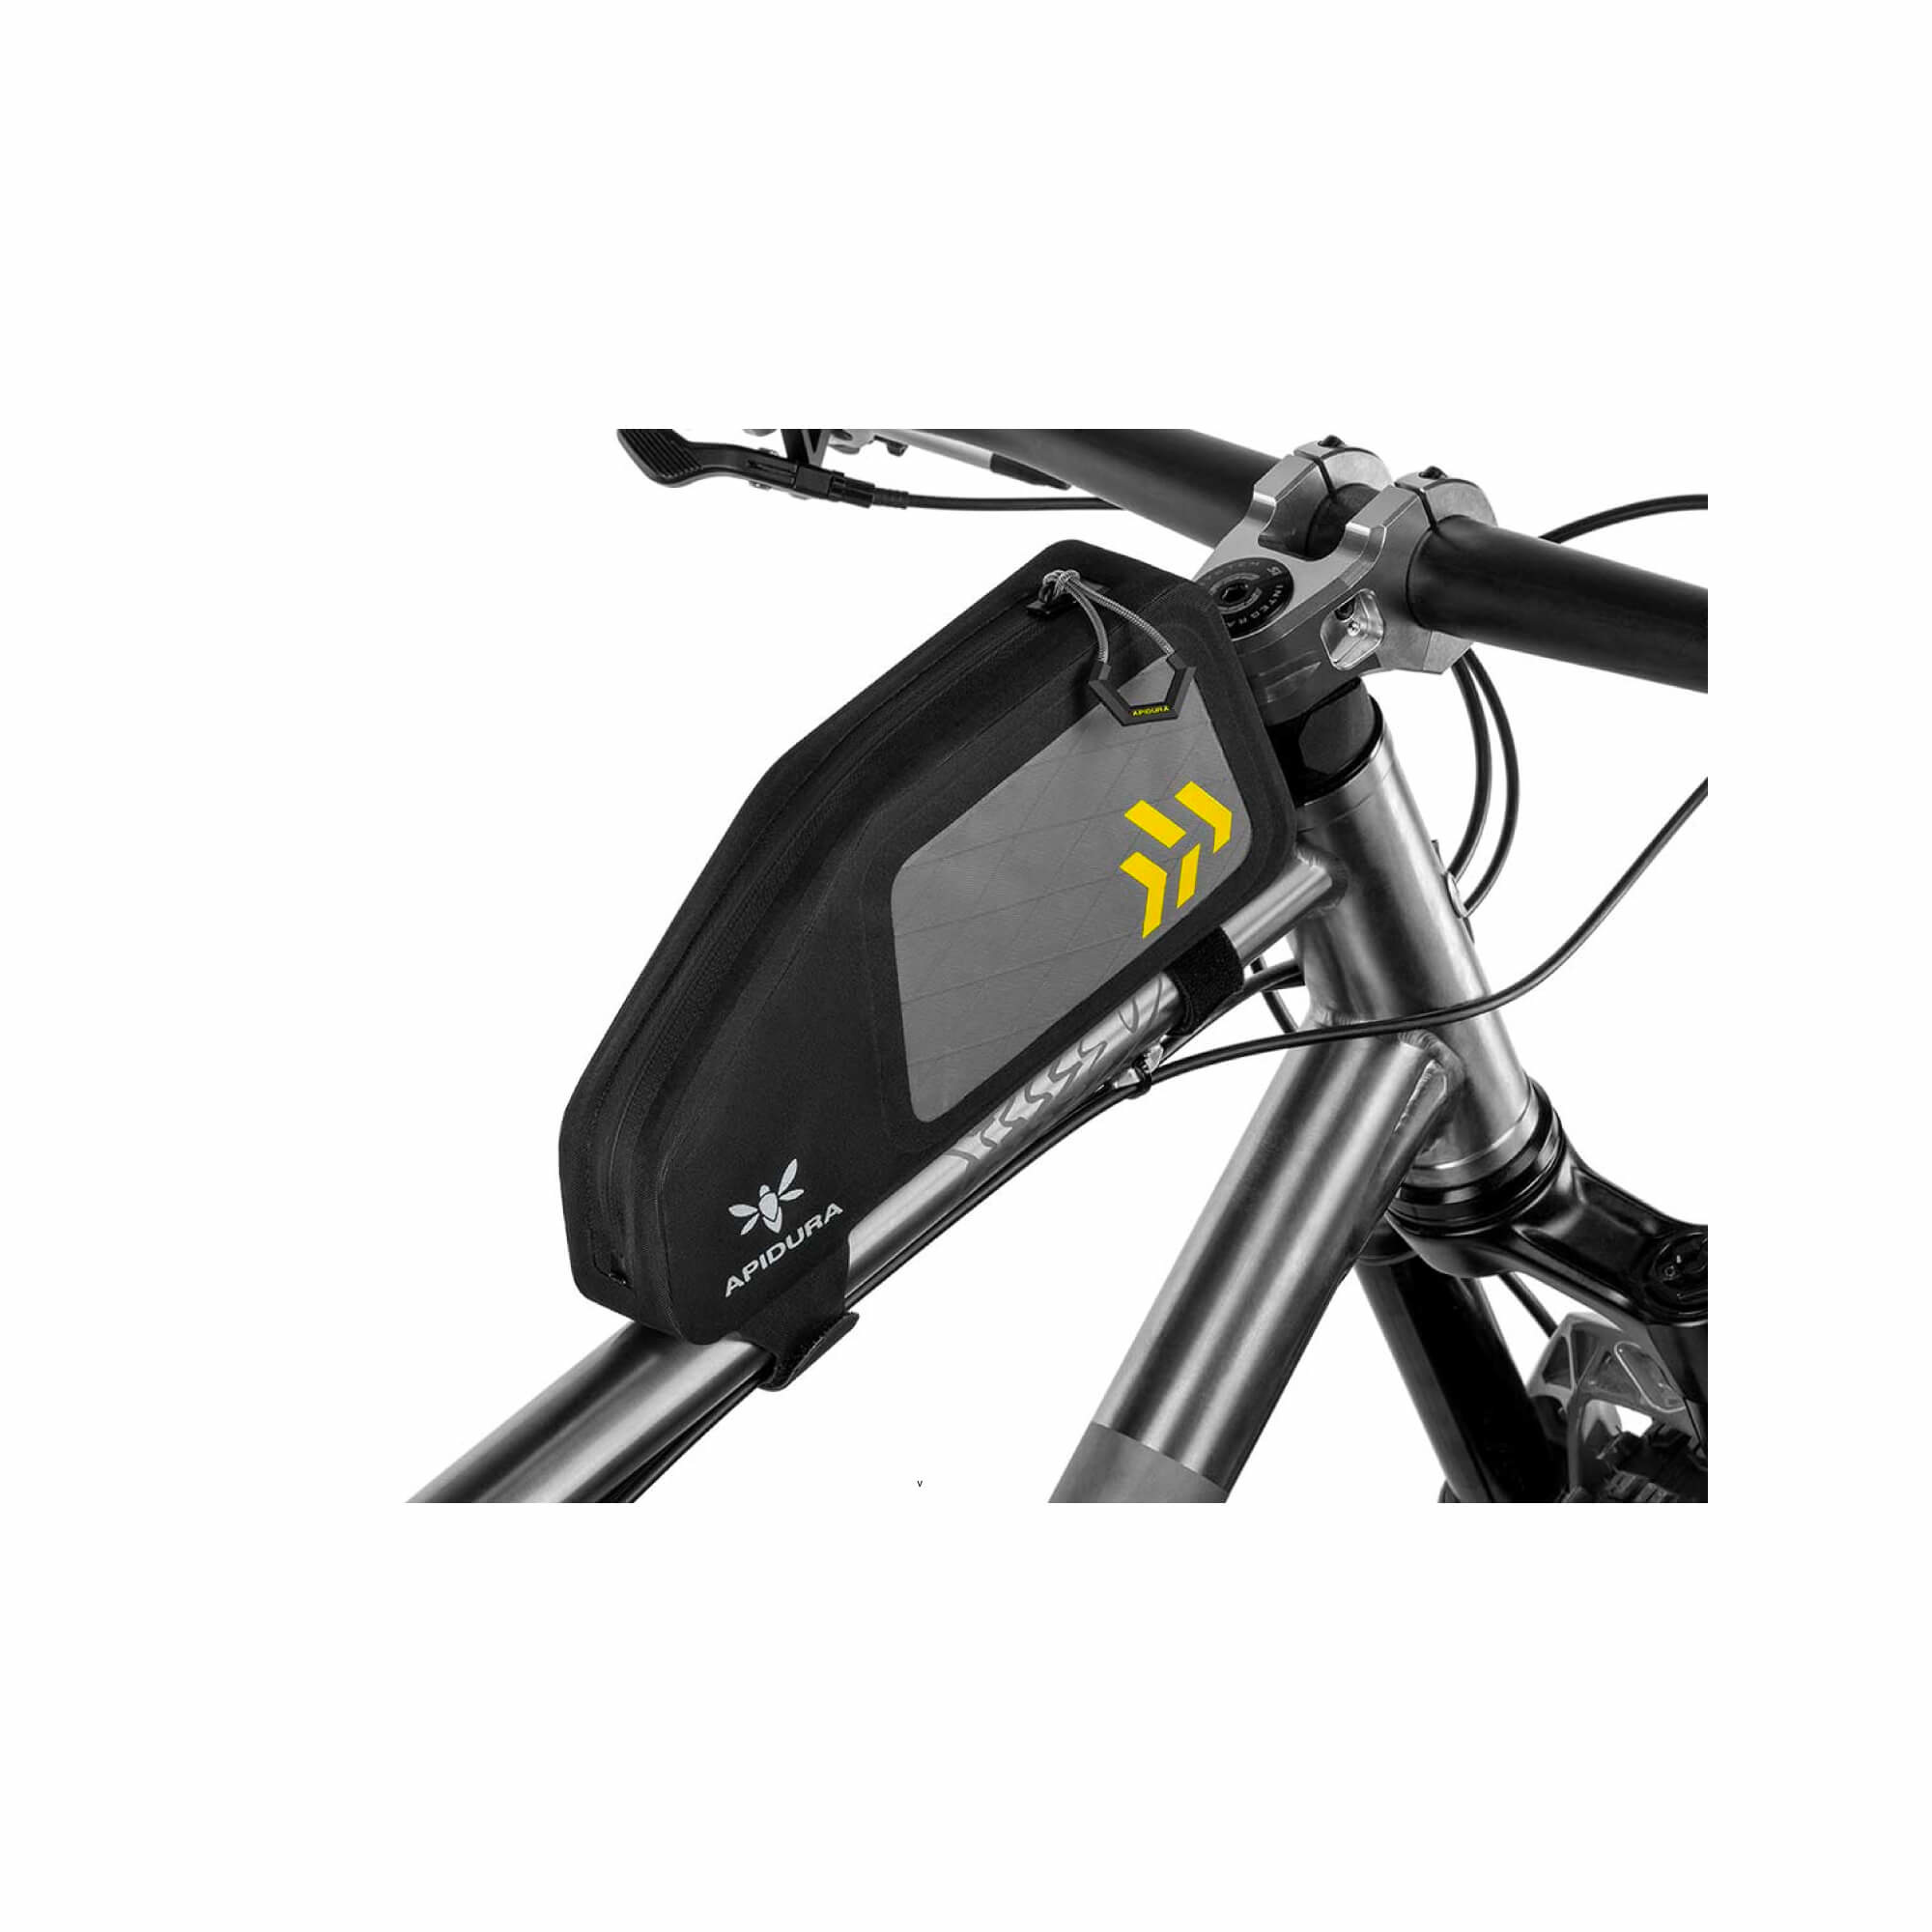 Backcountry2 Top Tube Pack 1 L-4